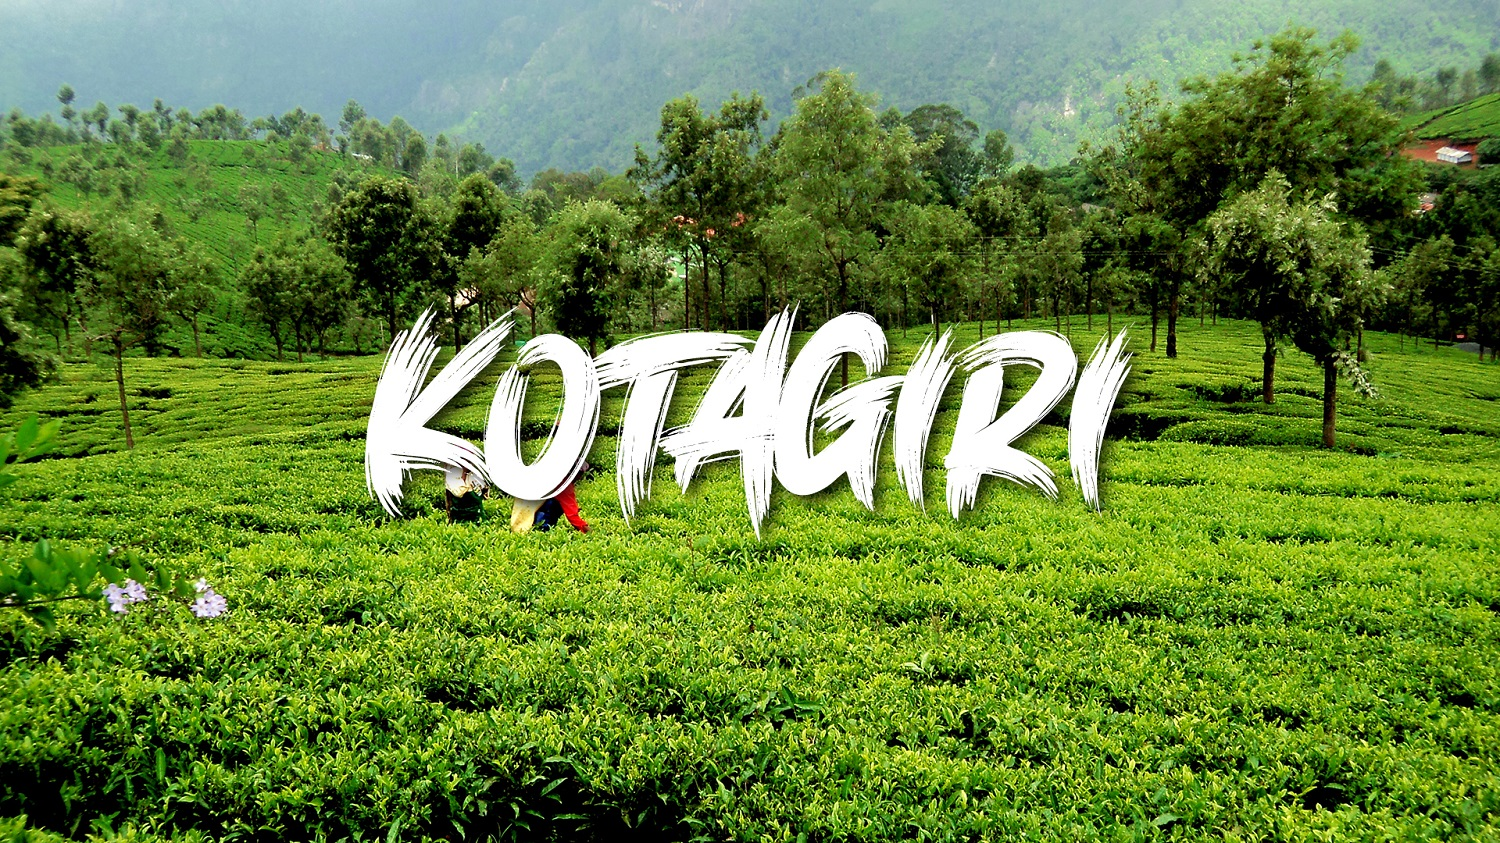 Reserve Your Gifted Quota for Living in Kotagiri!